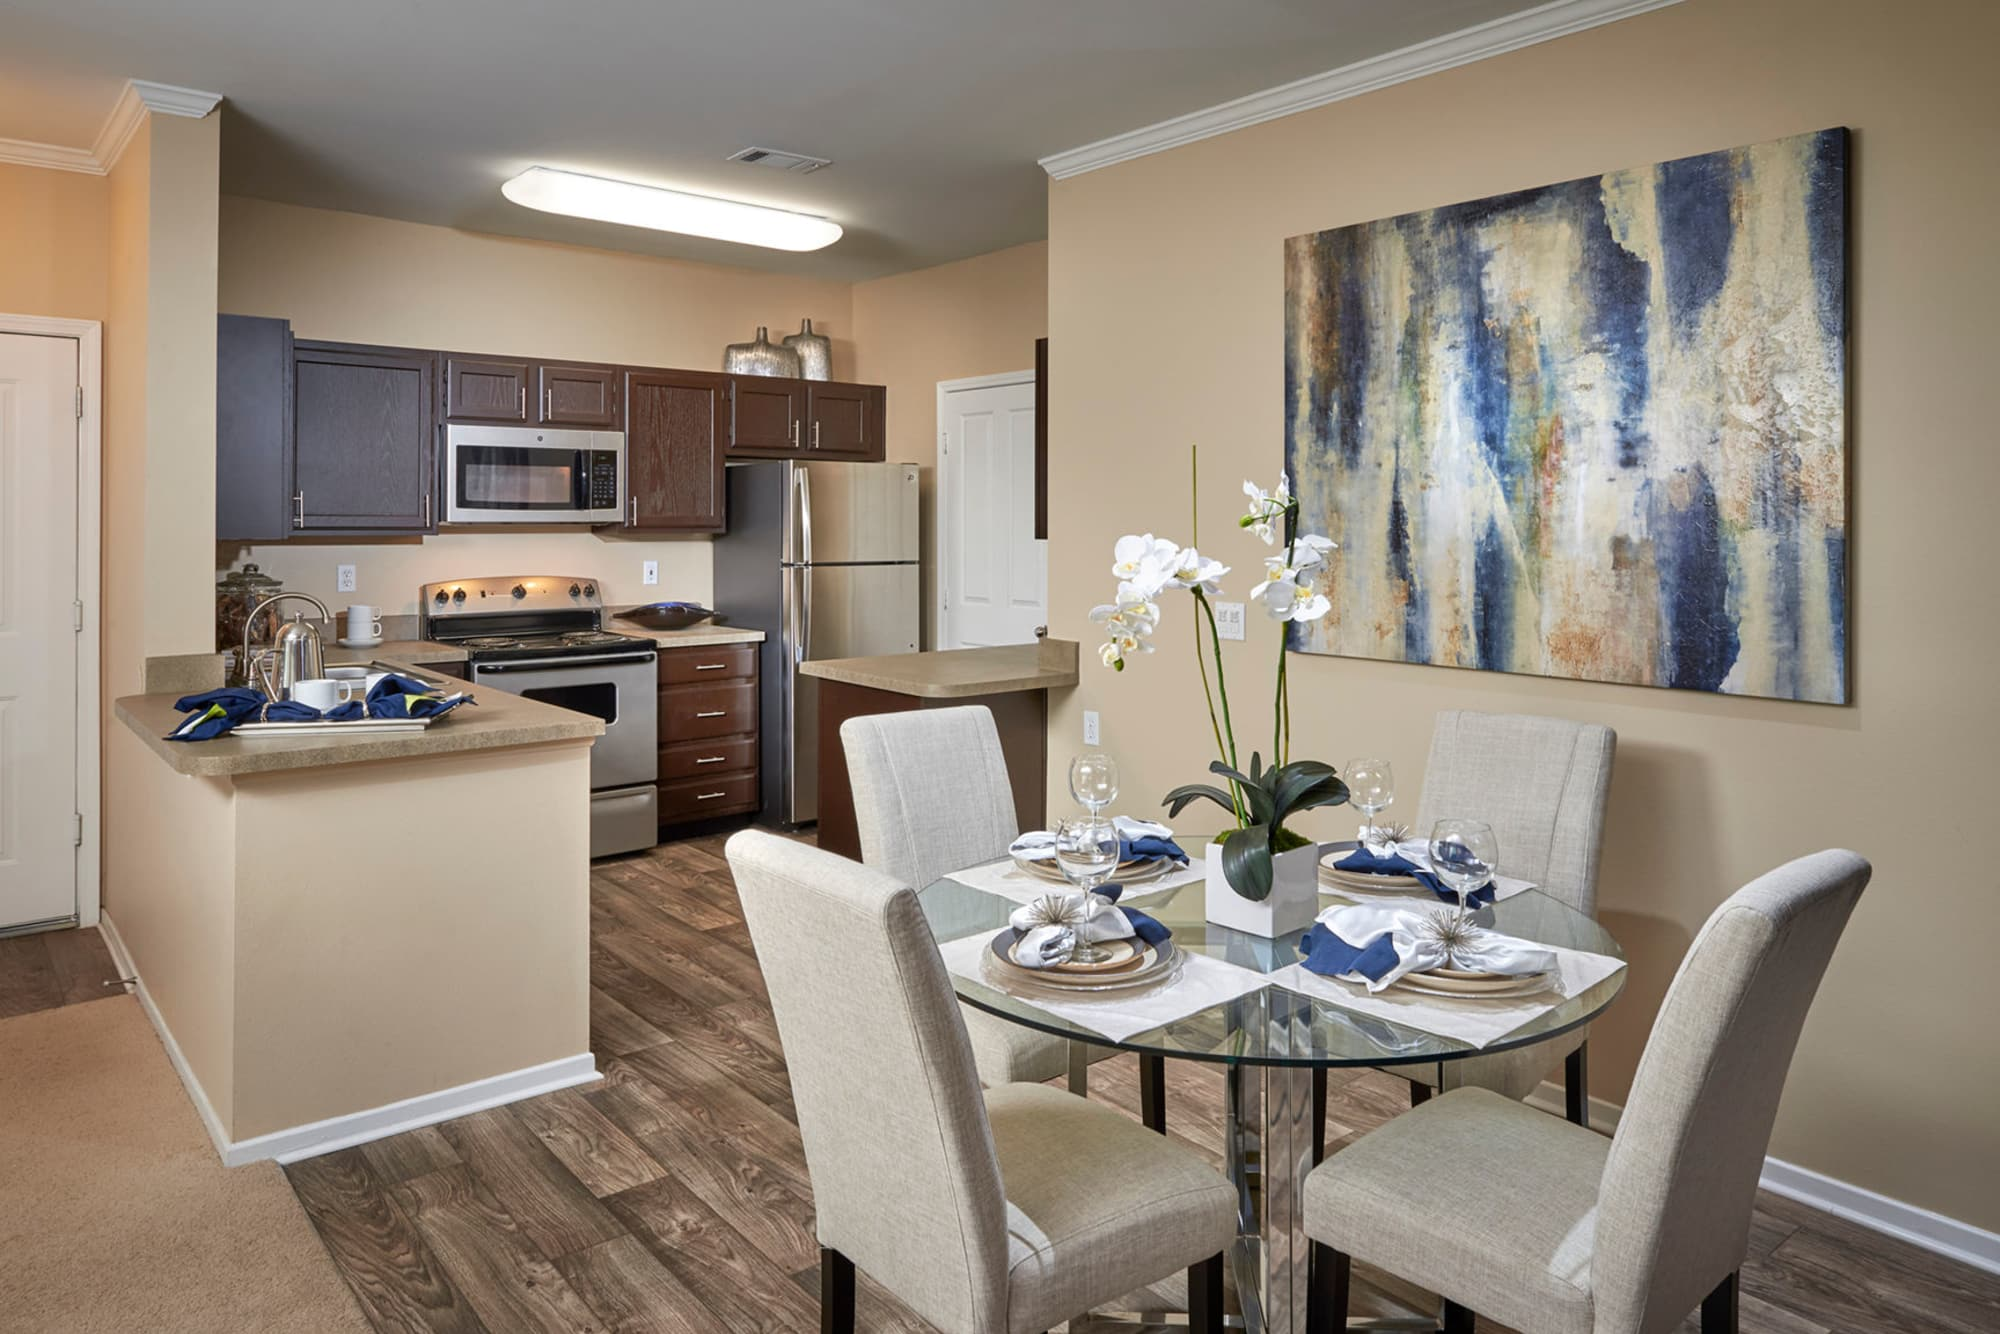 Nice dining table next to the kitch at Legend Oaks Apartments in Aurora, Colorado